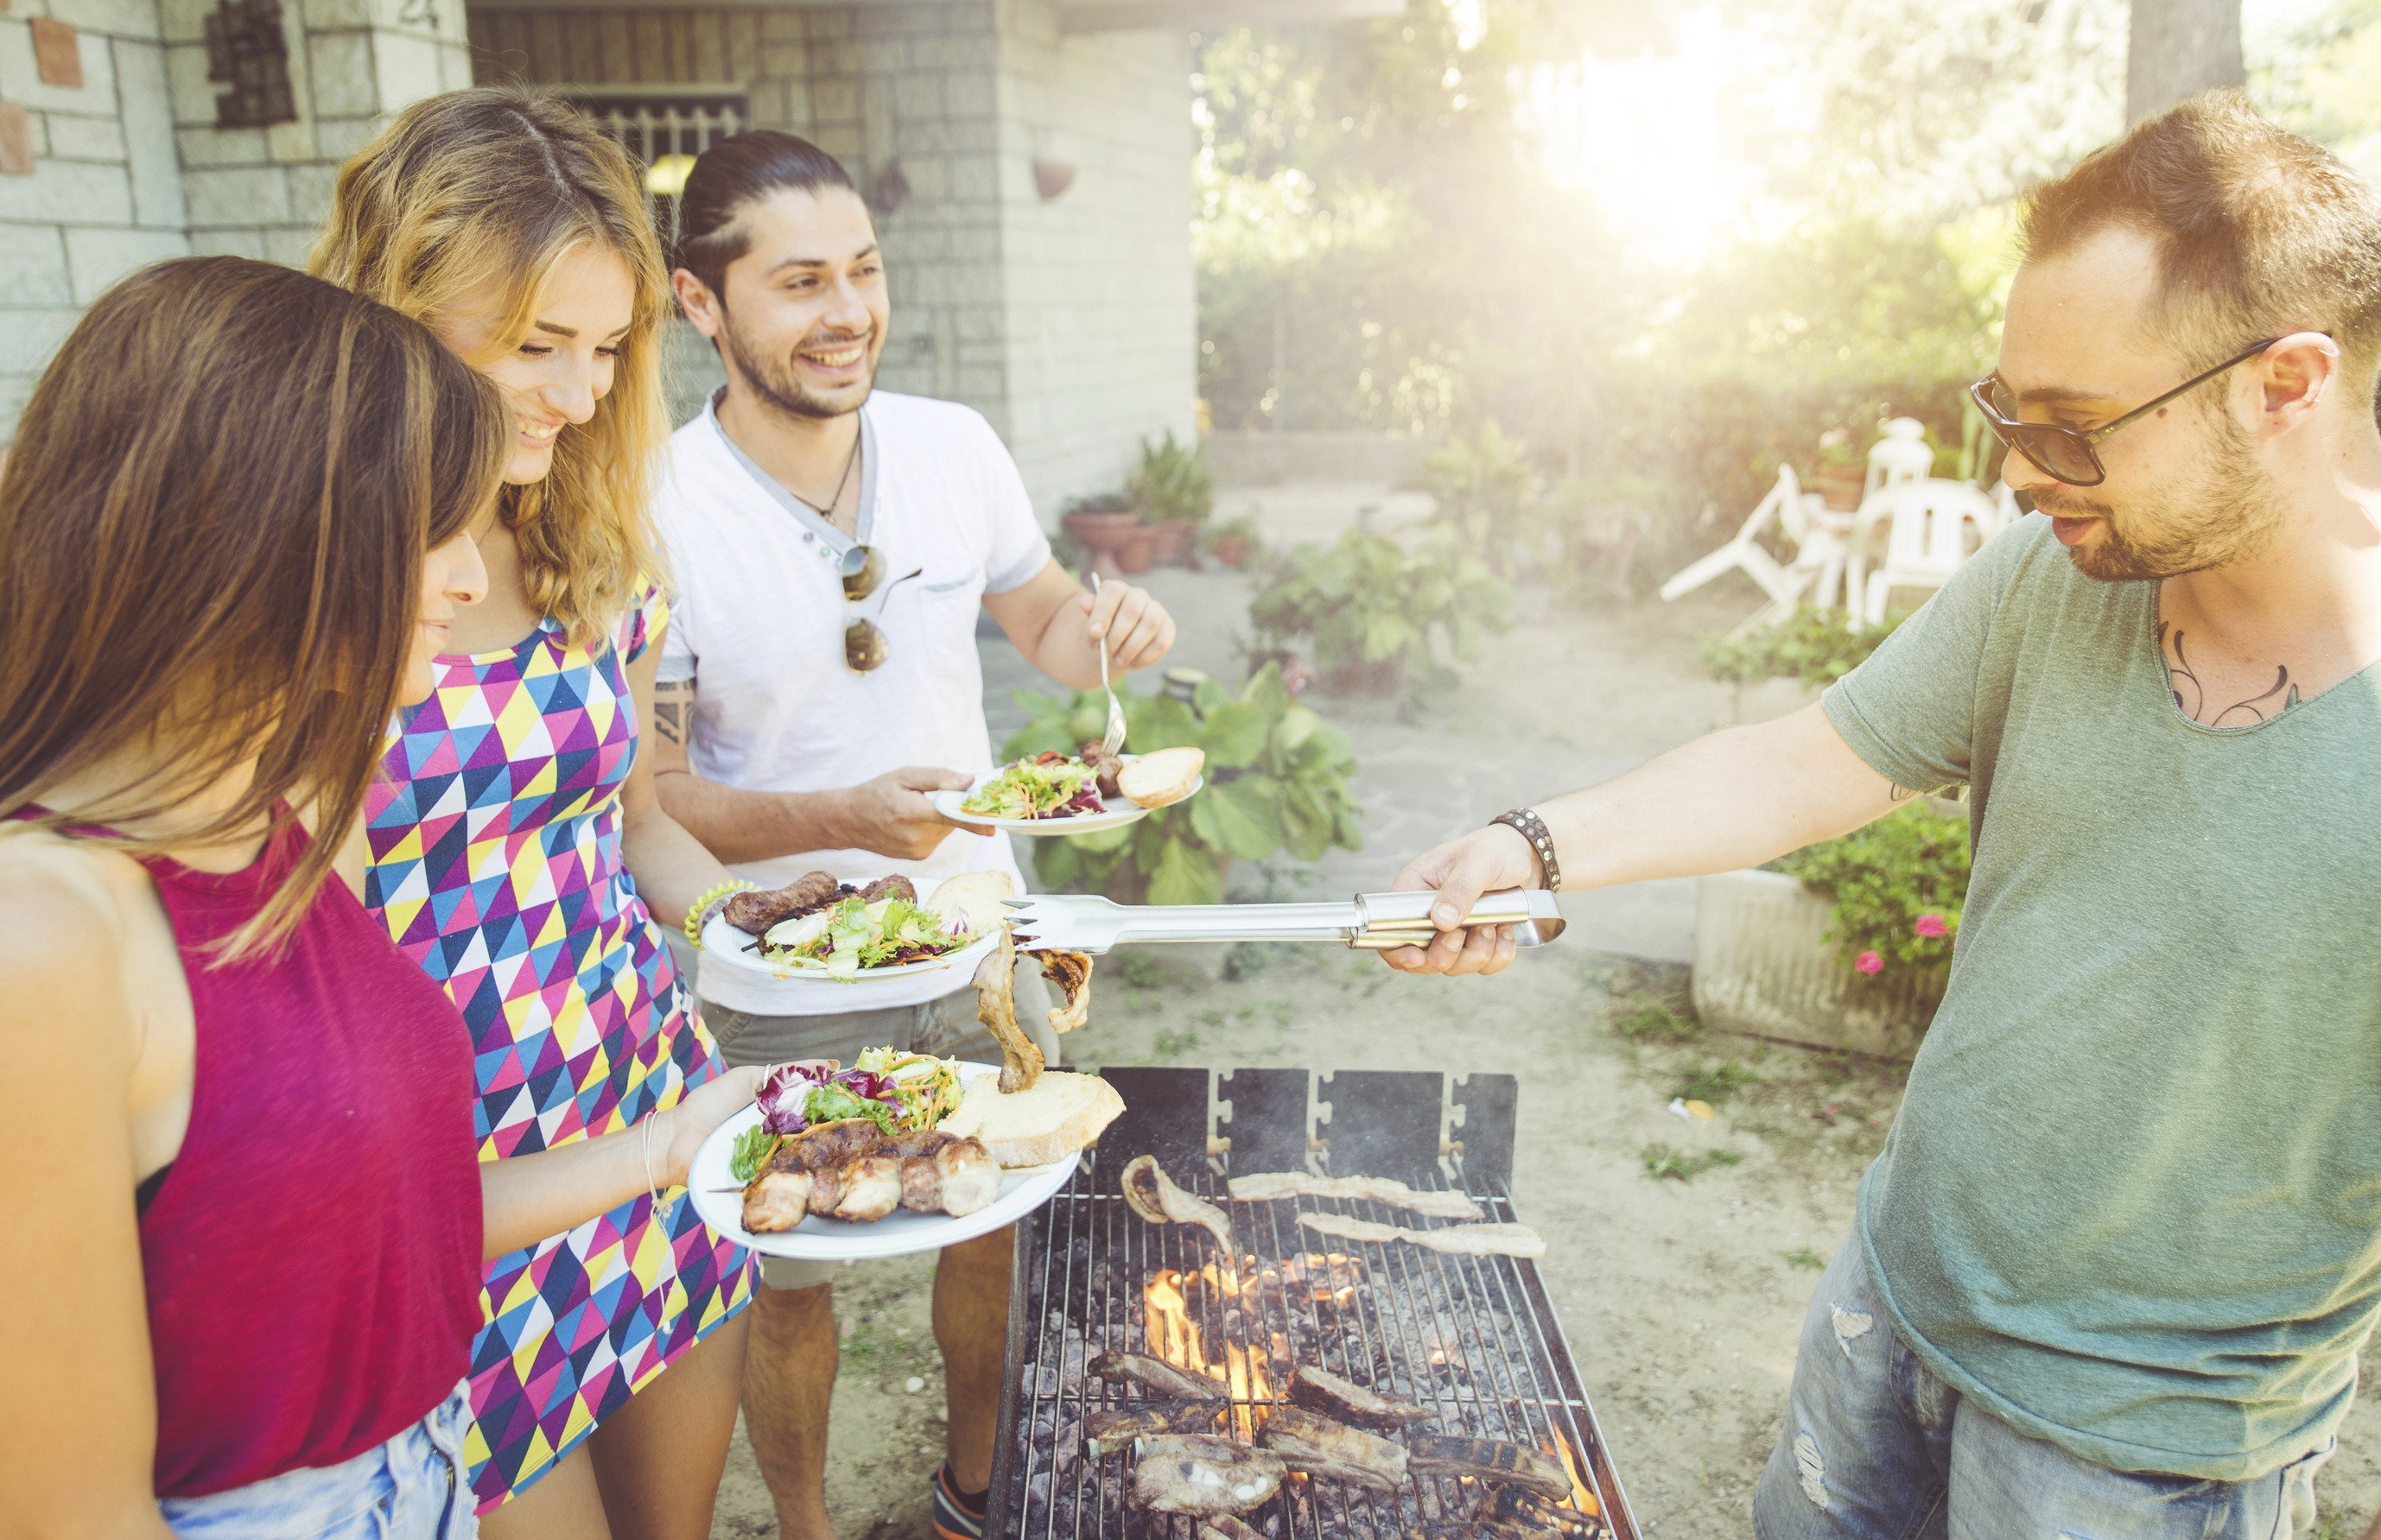 Grill smart: Stay safe at summer barbecues